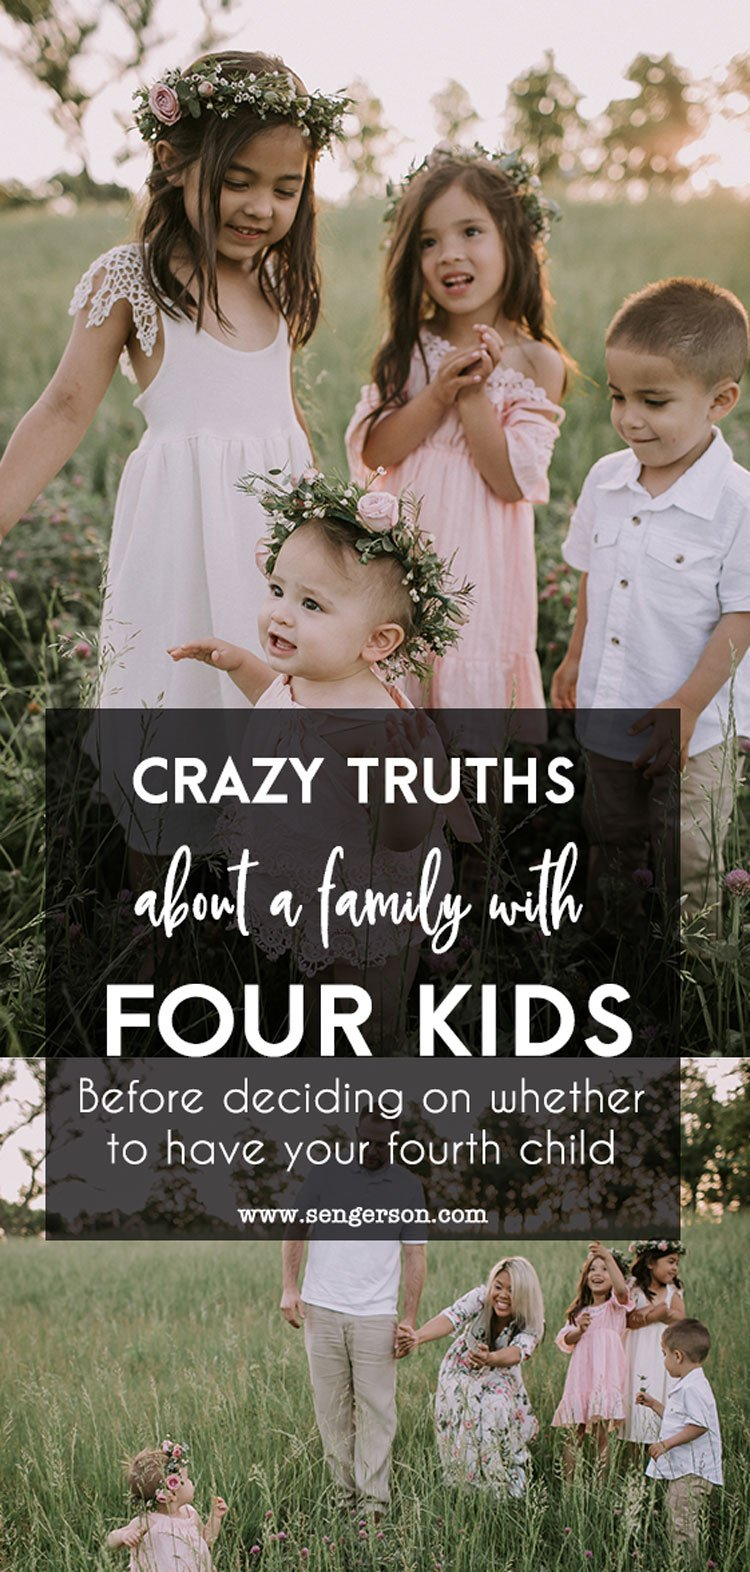 The crazy truth to having four kids.